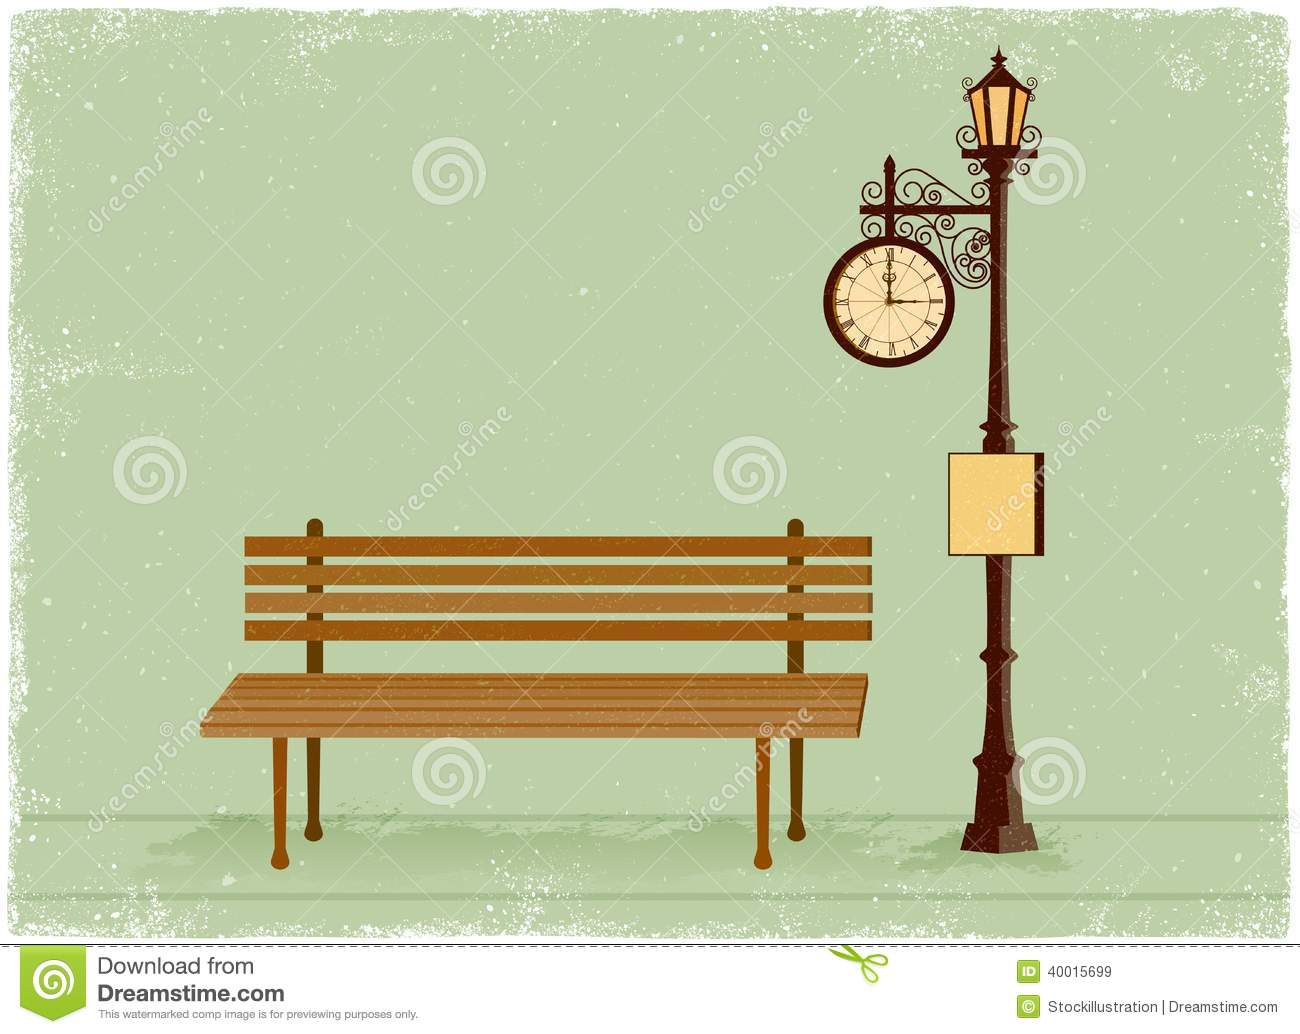 ... Clock And Lamp Post With Park Bench Stock Vector - Image: 40015699